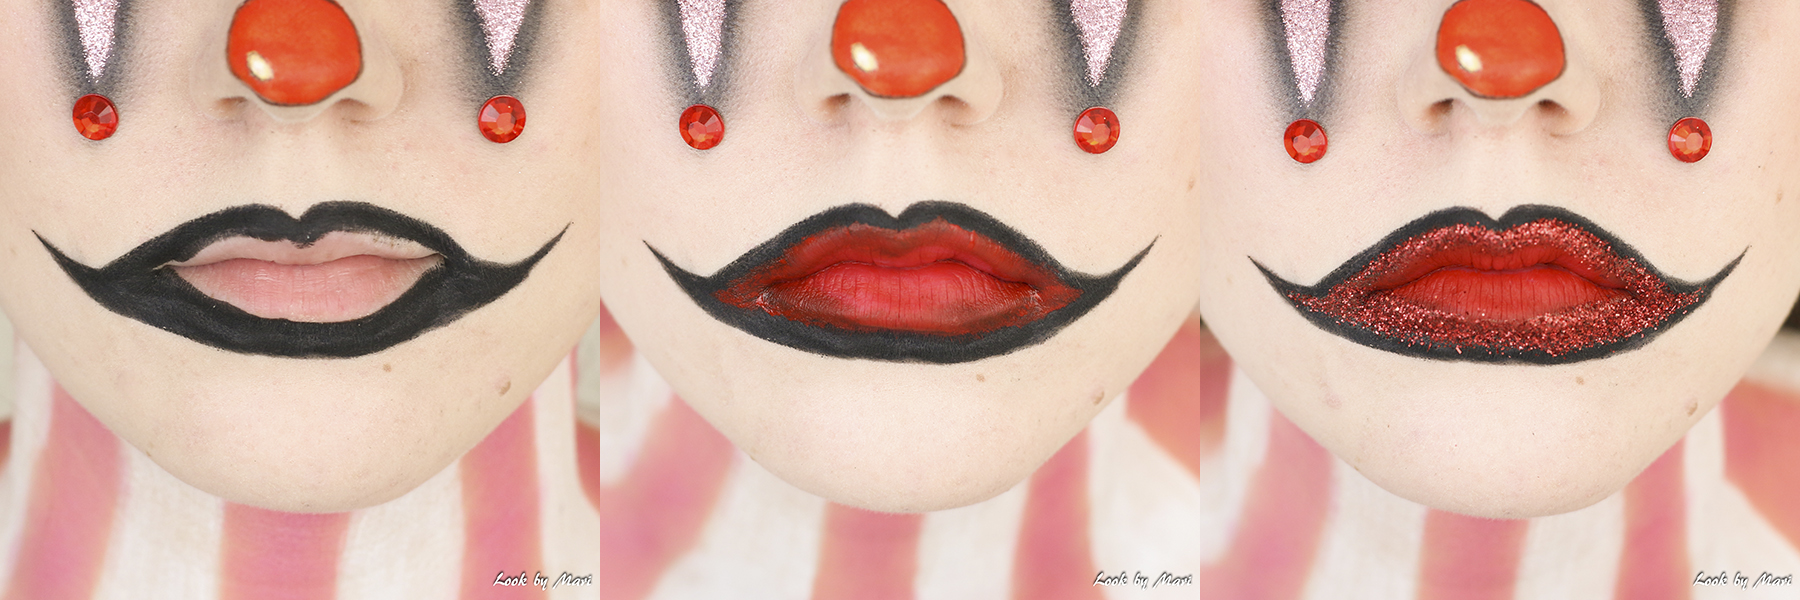 17 clown lips  tutorial glittery glitter ideas inspo inspiration red pink blog